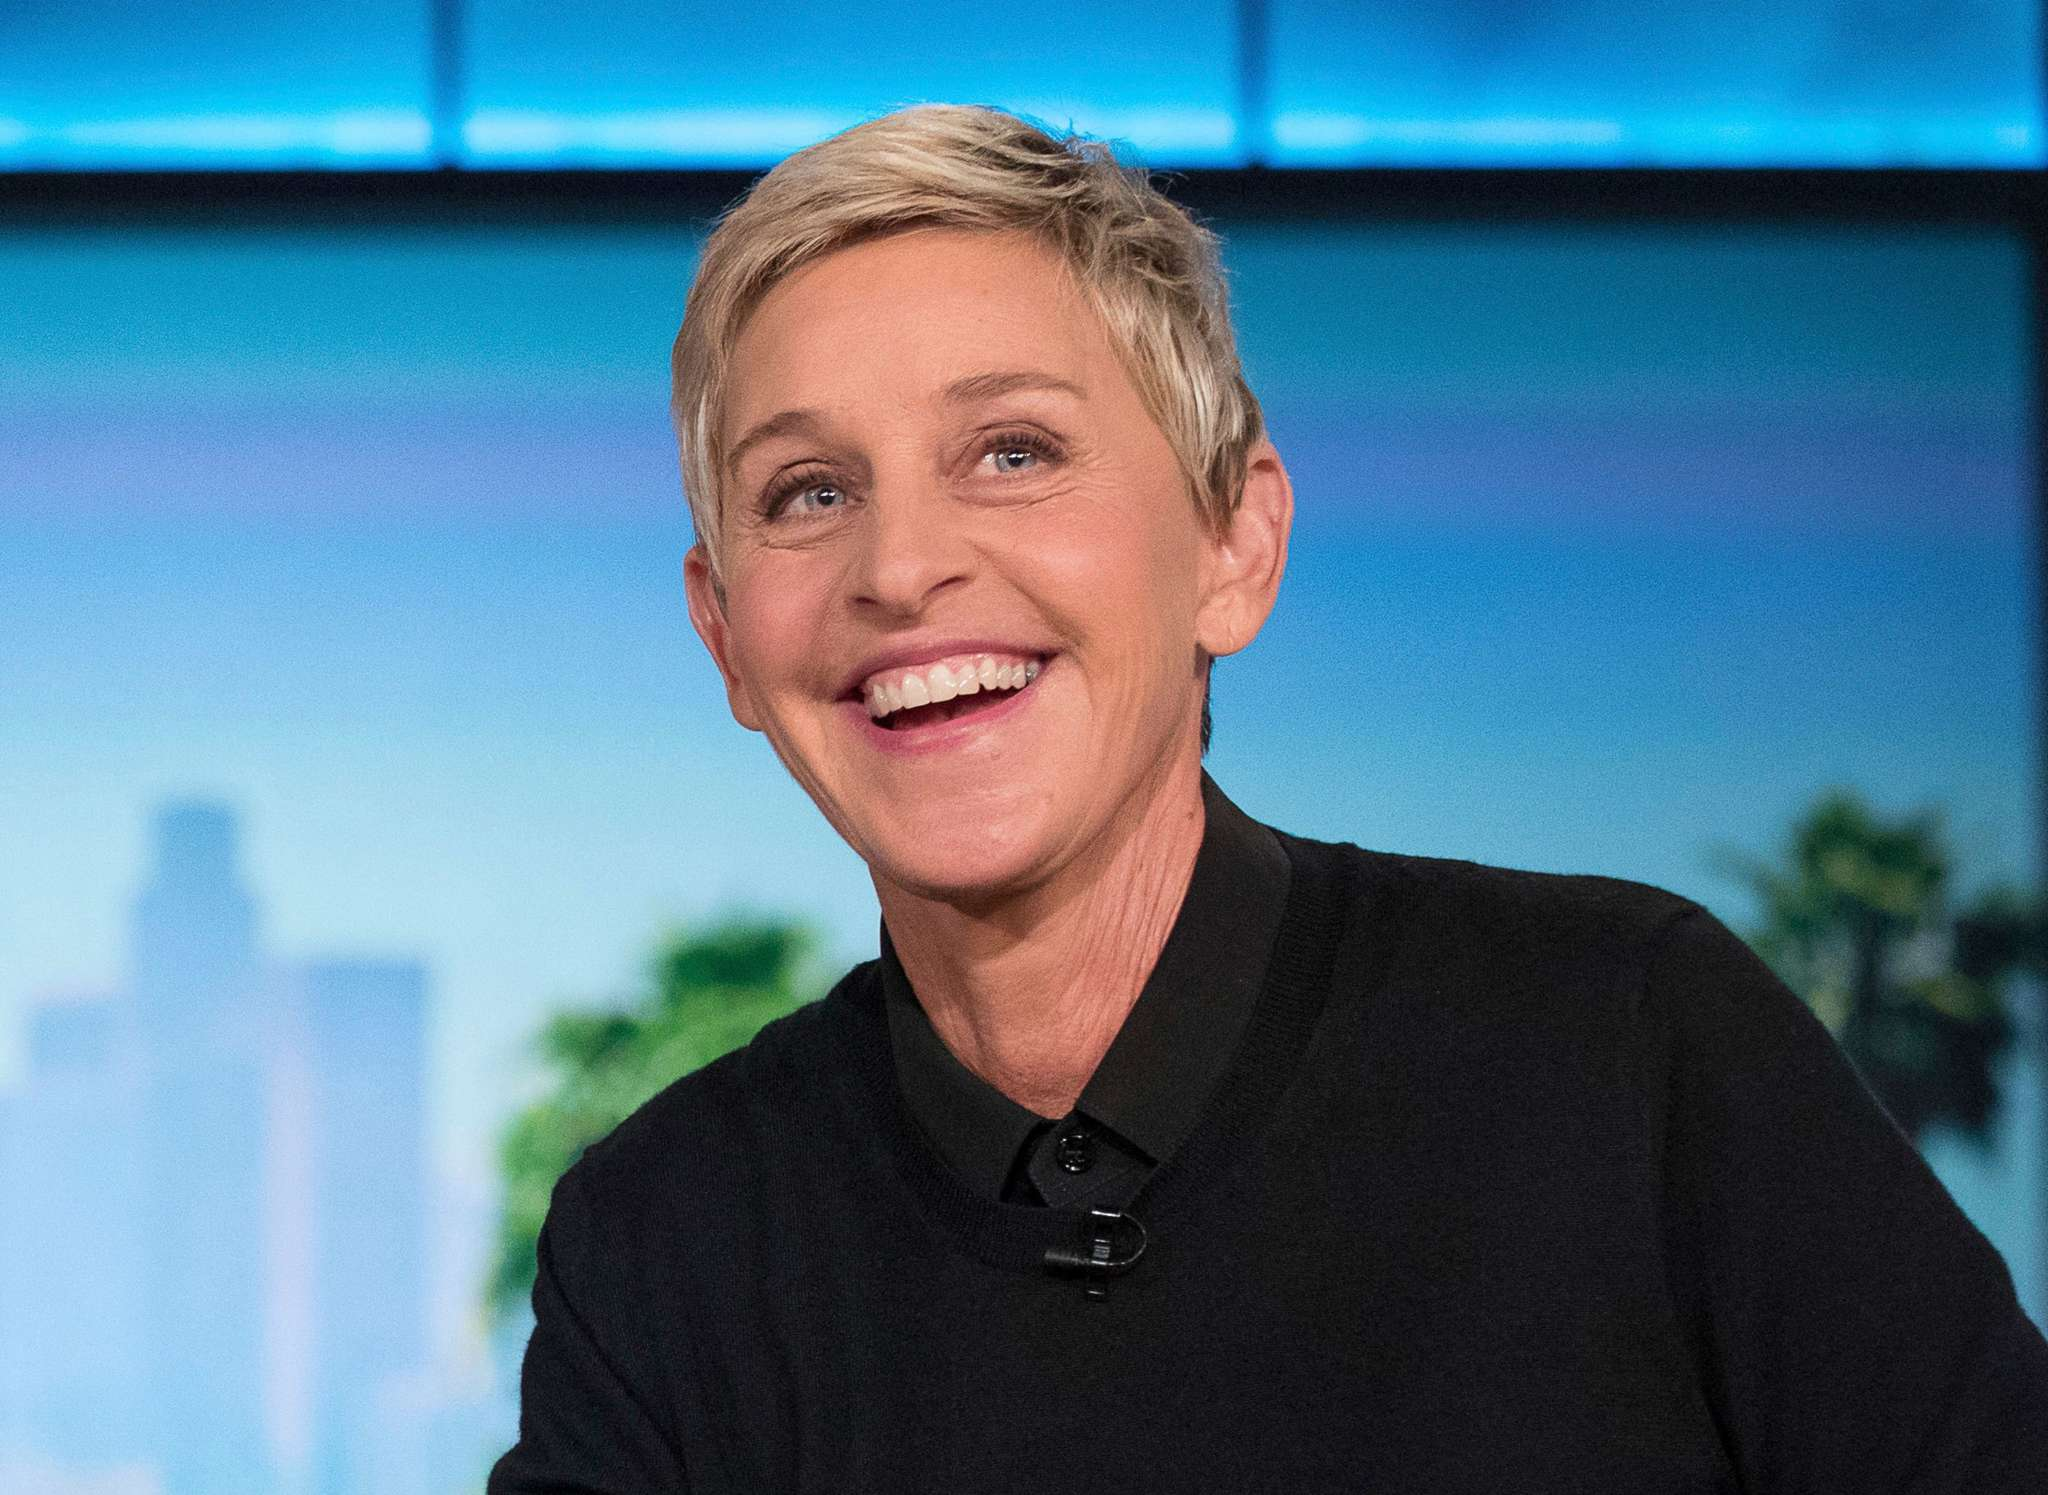 Ellen DeGeneres Cannot Wait To Get Back To Her Talk Show